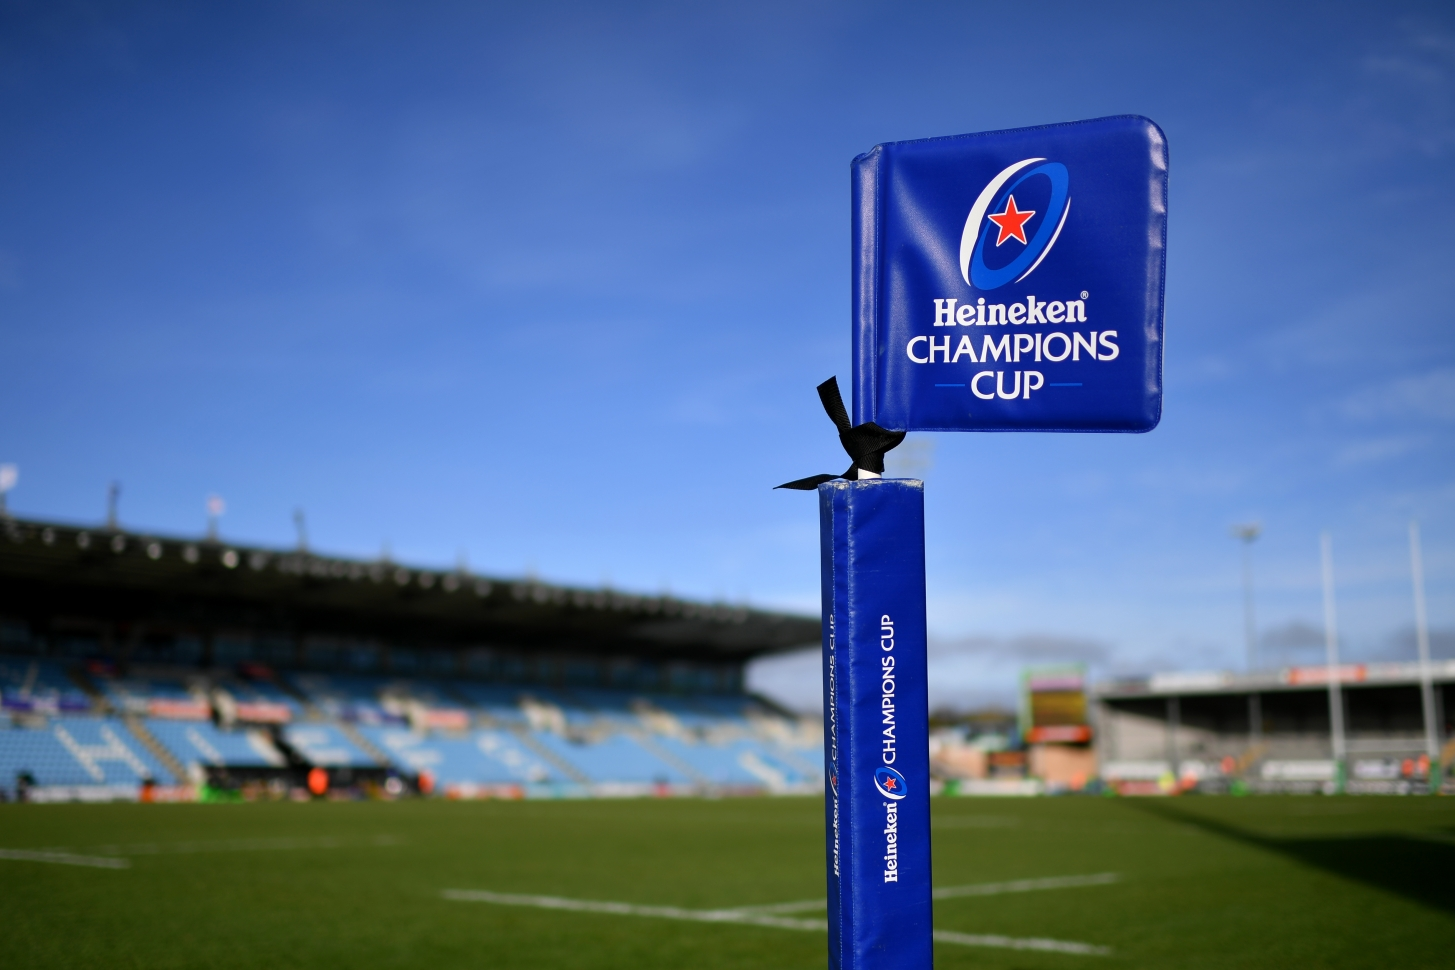 Champions Cup temporarily suspended